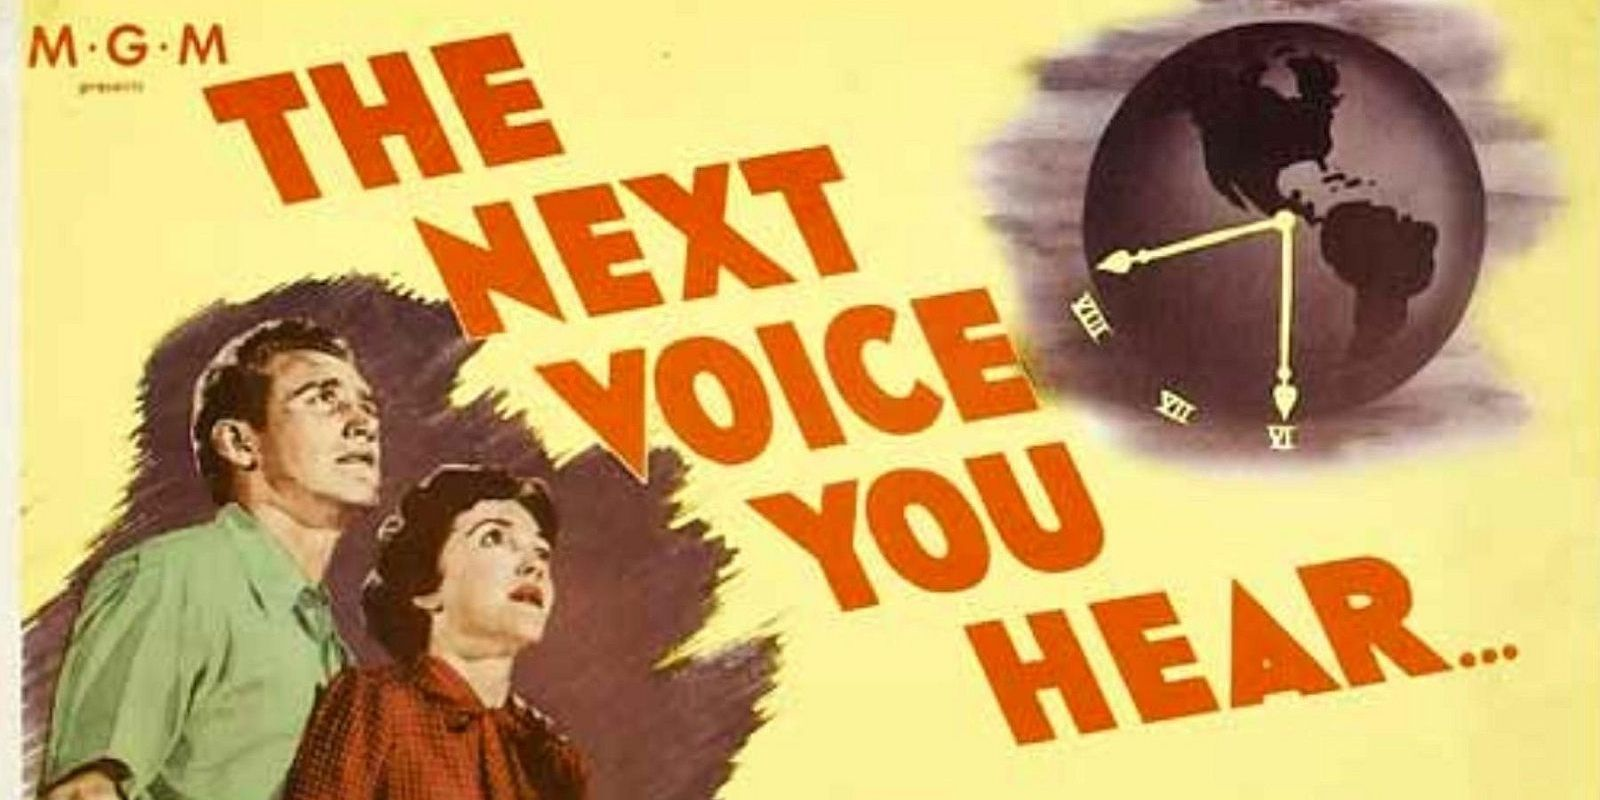 the-next-voice-you-hear-poster.jpg